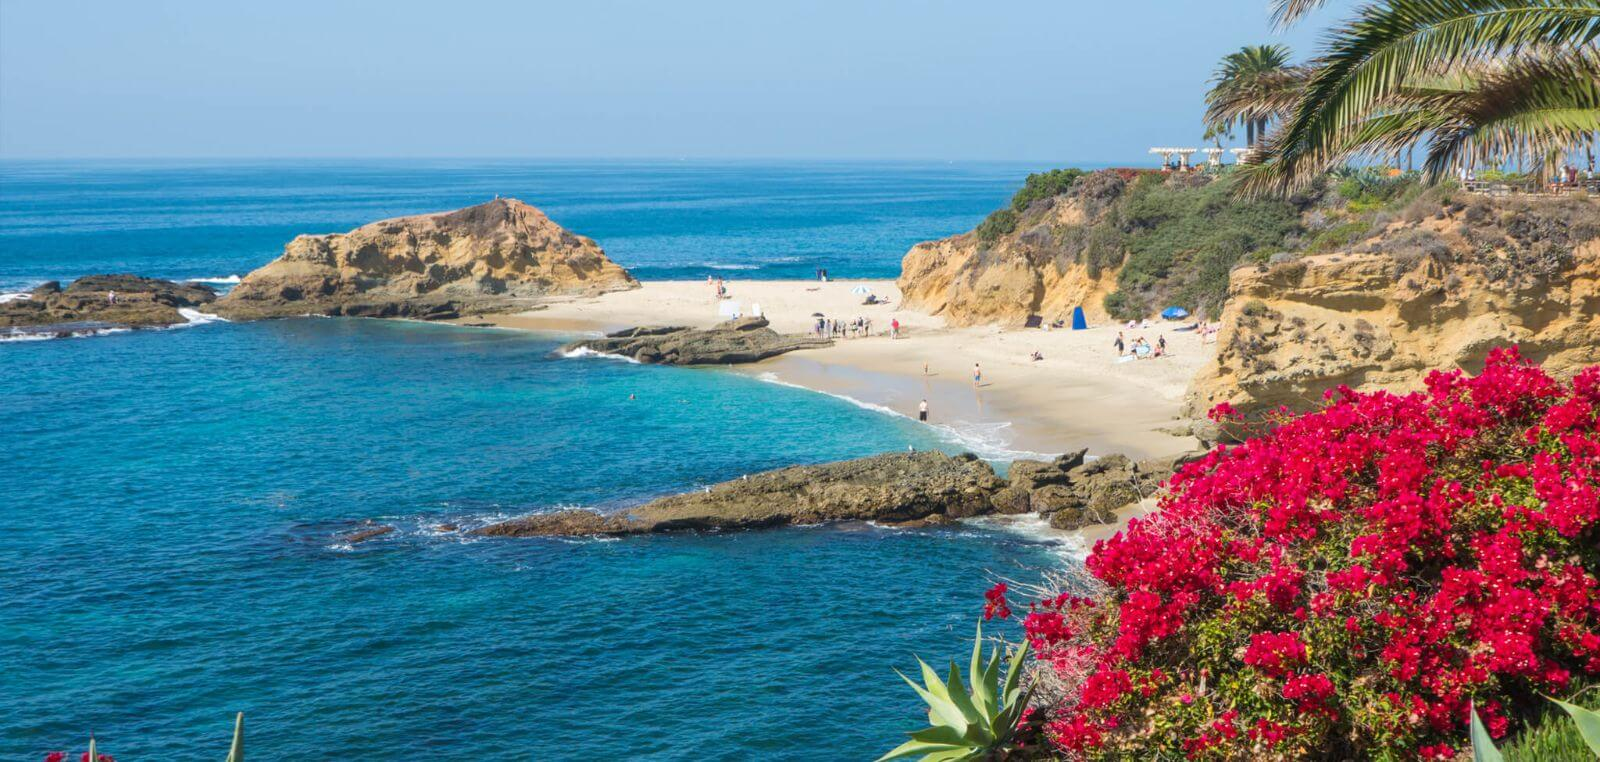 TOP 100 THINGS TO DO IN LAGUNA BEACH